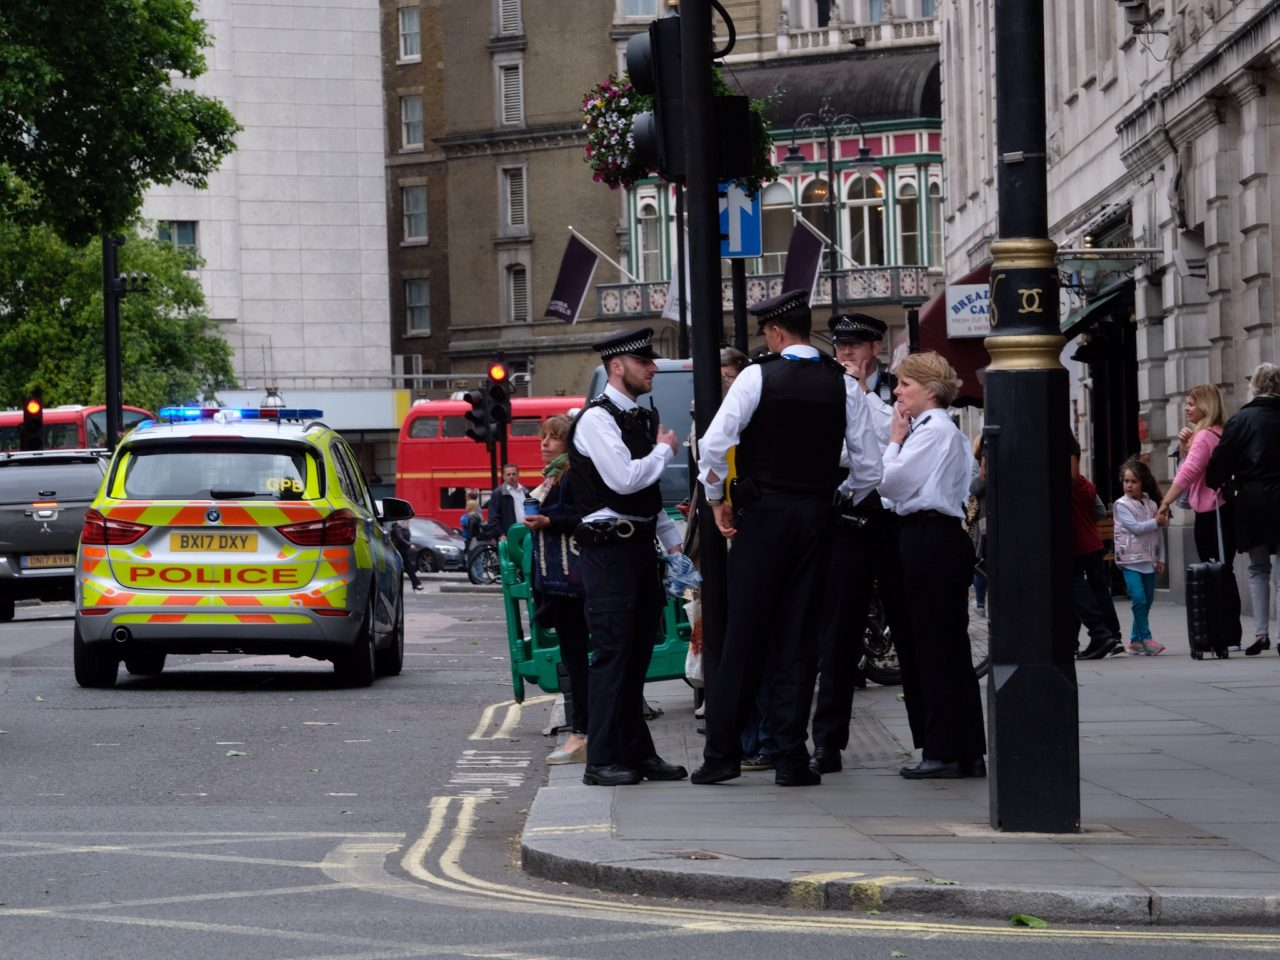 Armed cops evacuate Trafalgar Square this afternoon